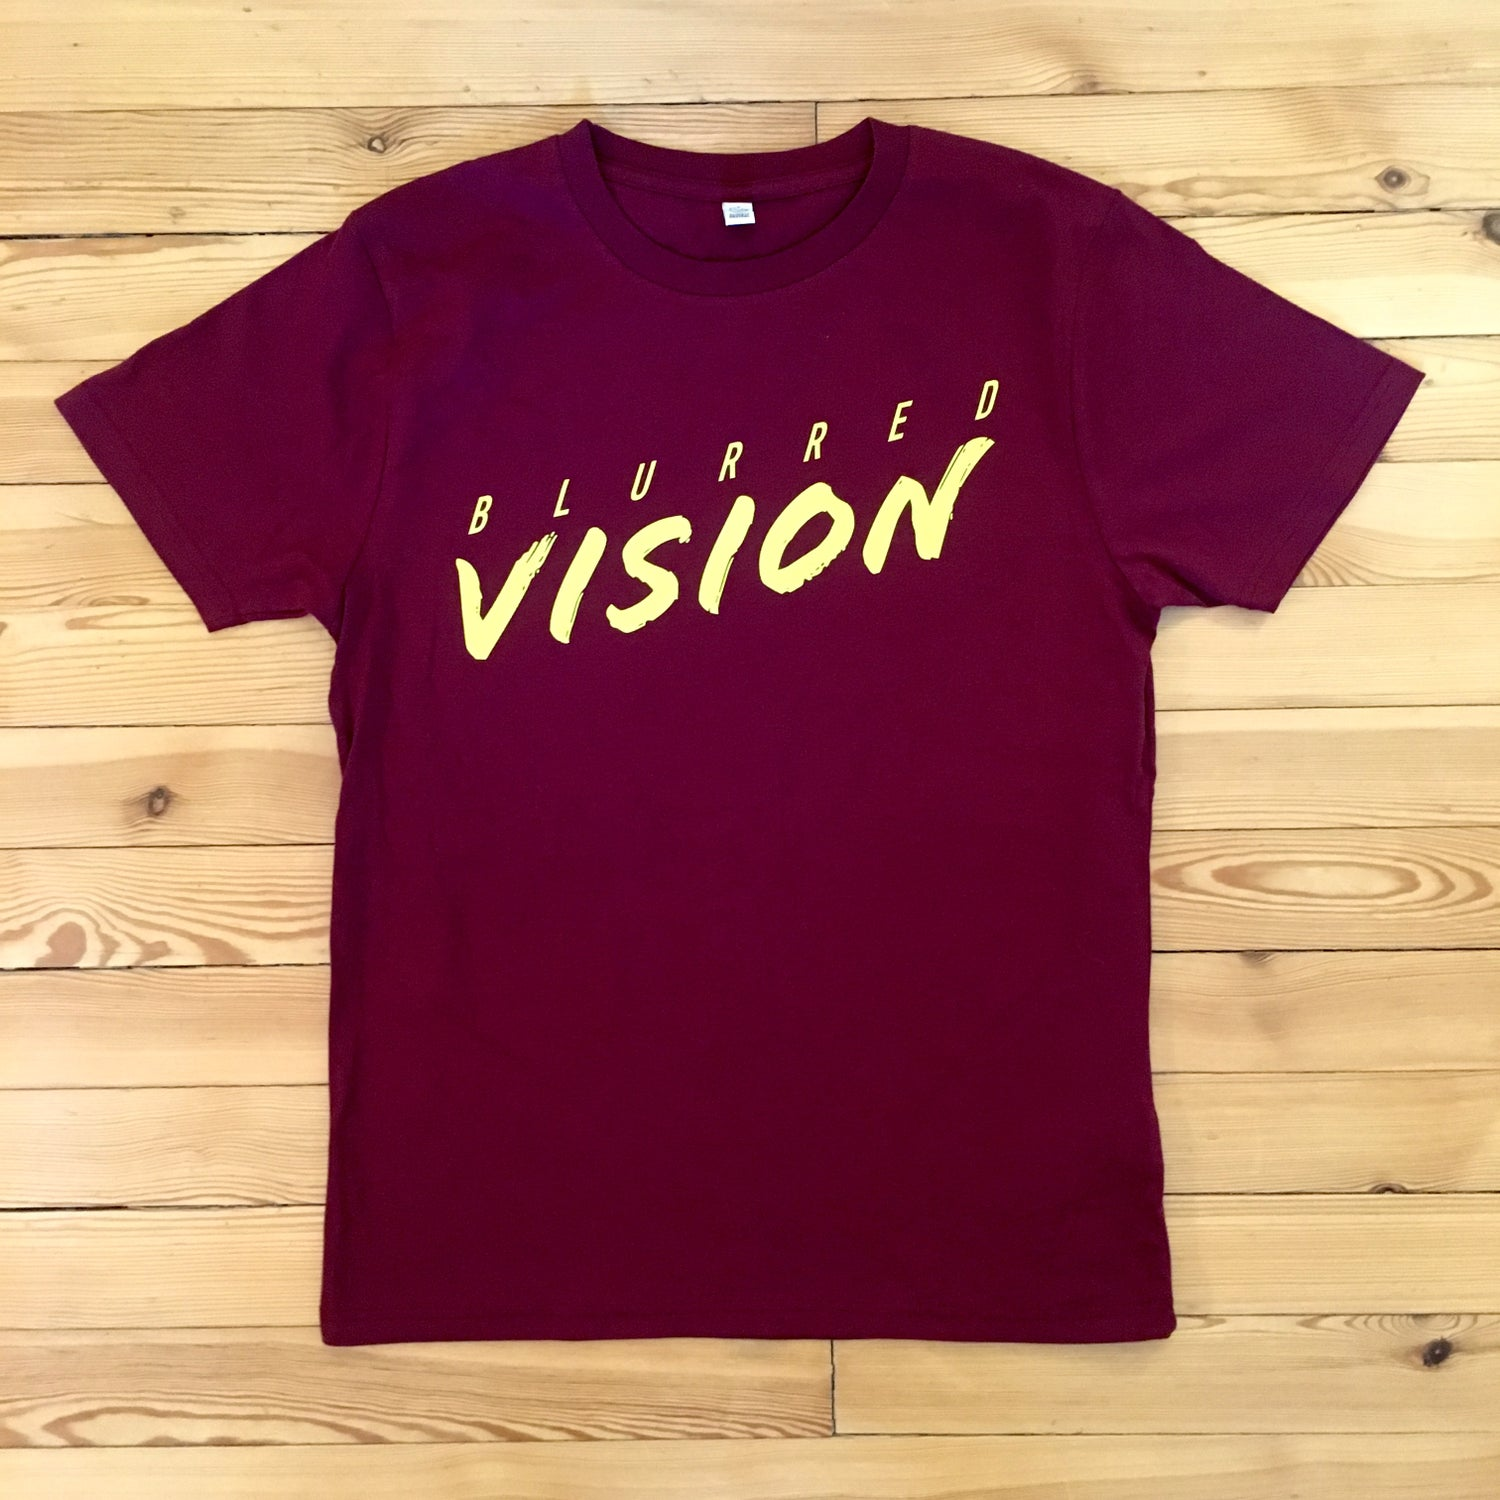 Image of Blurred Vision T-Shirt 2017